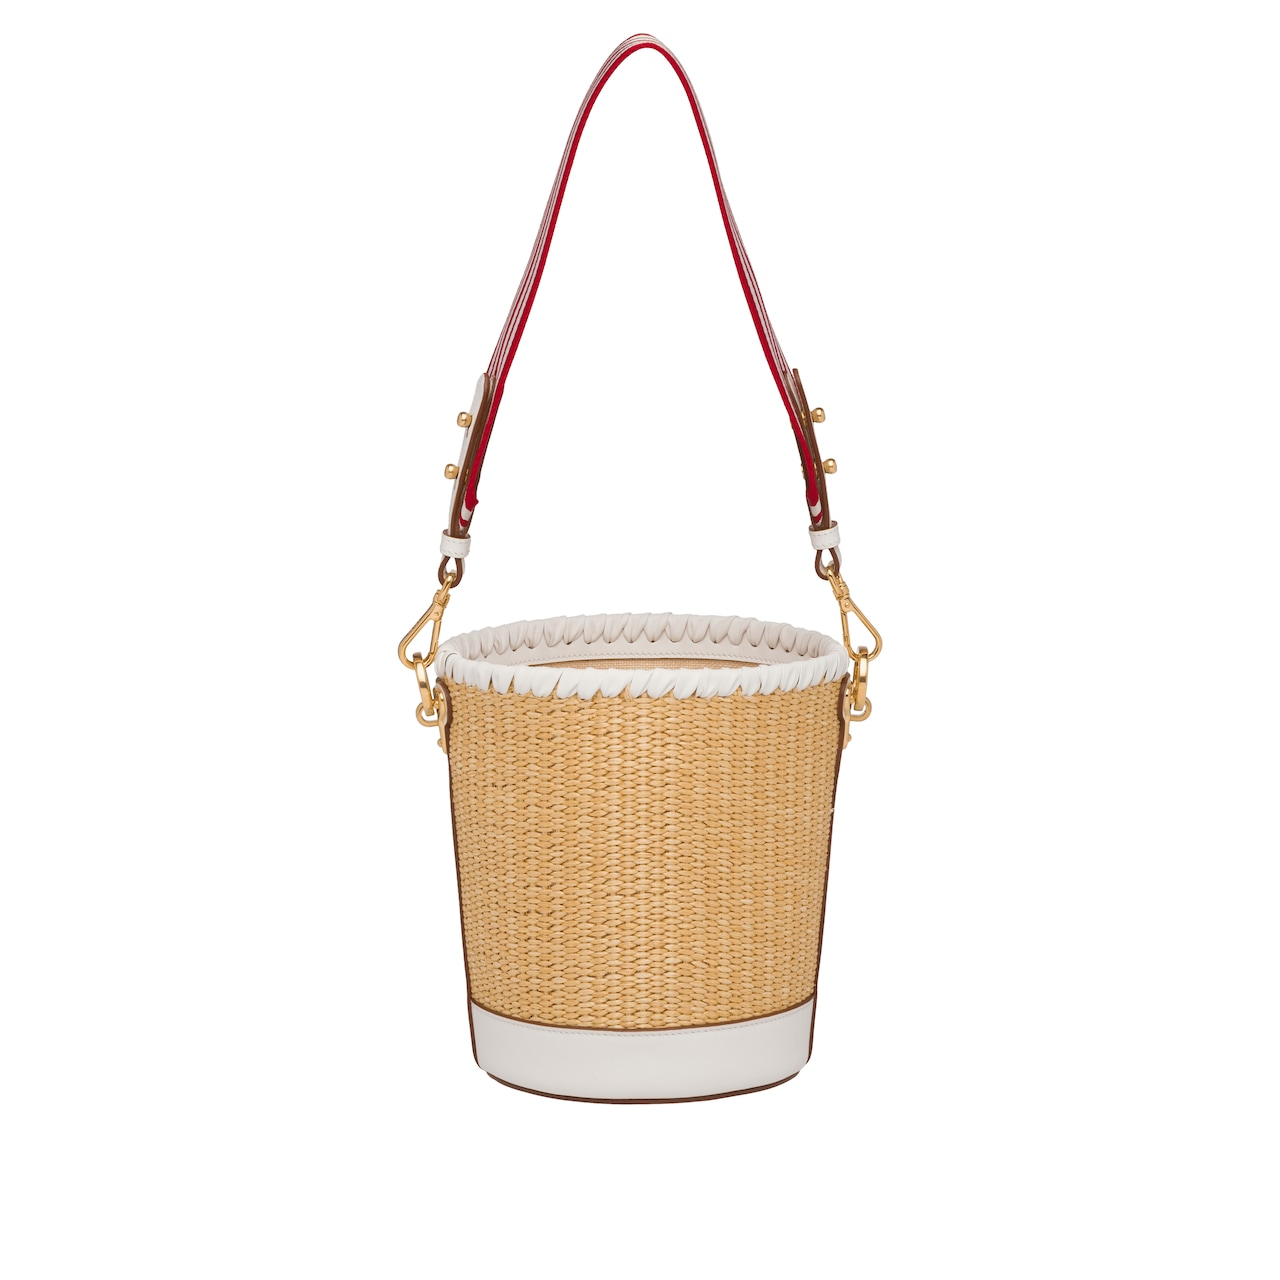 Straw and leather bucket bag